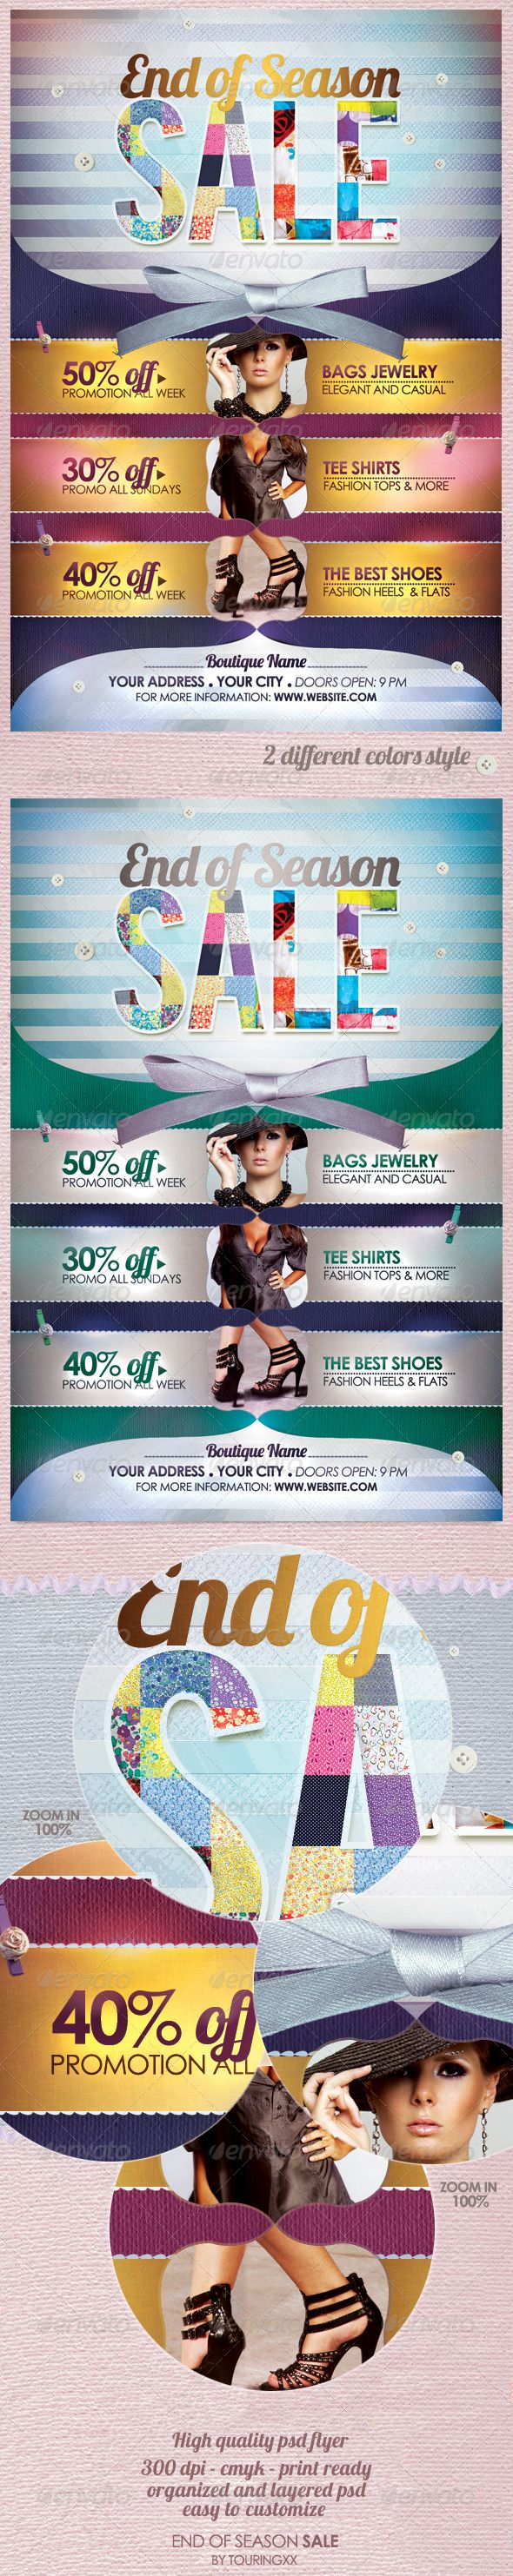 End of Season Sale Flyer Template - $6. ***This flyer is perfect for the promotion of Shops/Boutiques, Fashion Shows, New Collections, Promotions or whatever you want!.  This Template Brings a Unique Look and Feel For Your Business Marketing.***